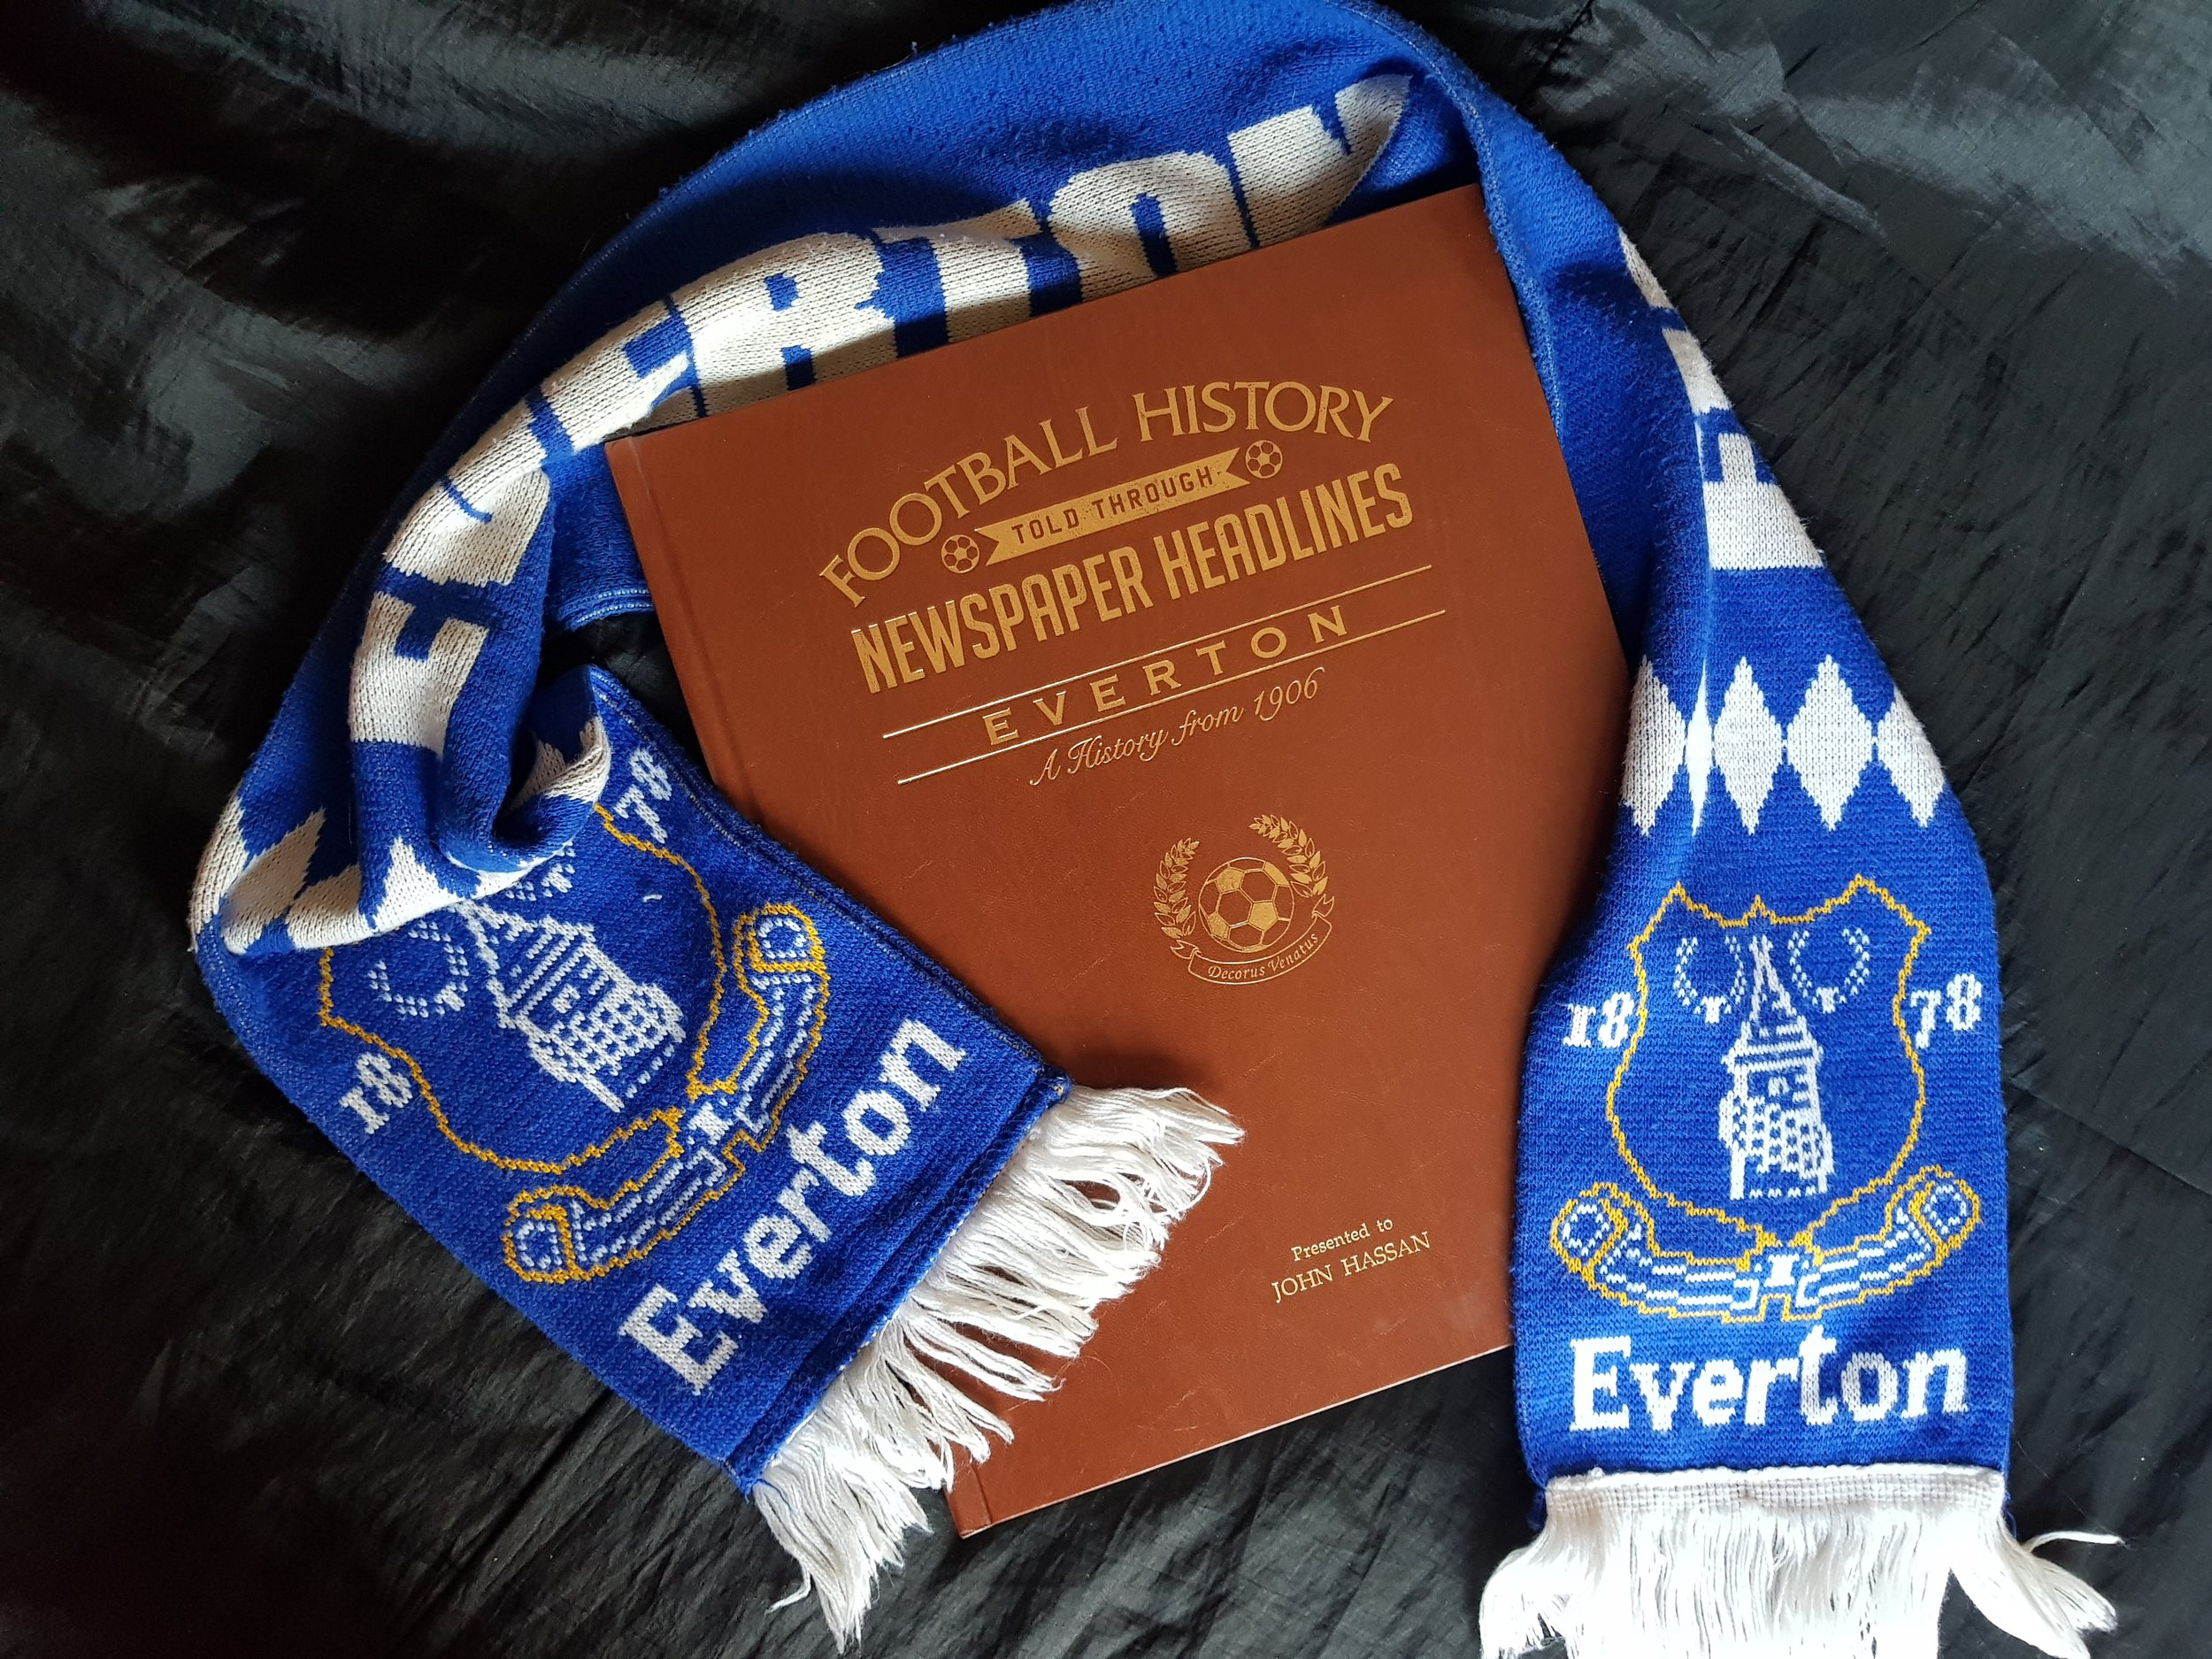 Everton Football History Newspaper Book Me Becoming Mum's Christmas Gift Ideas for Him